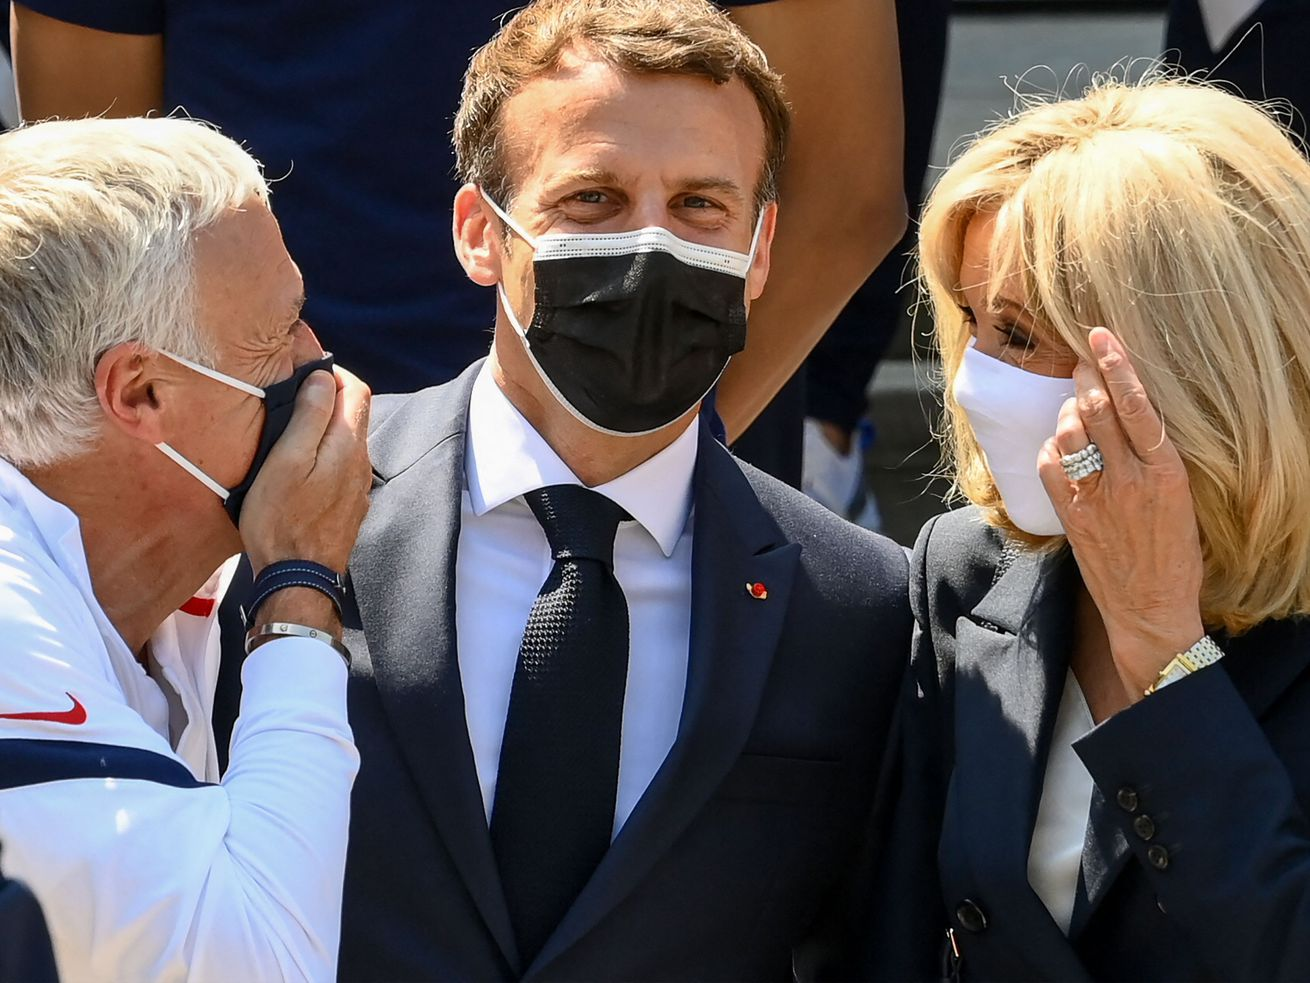 France's coach Didier Deschamps speaks with French President Emmanuel Macron and his wife Brigitte Macron before a lunch with France's players in Clairefontaine-en-Yvelines on June 10, 2021 ahead of the UEFA EURO 2020 football competition.